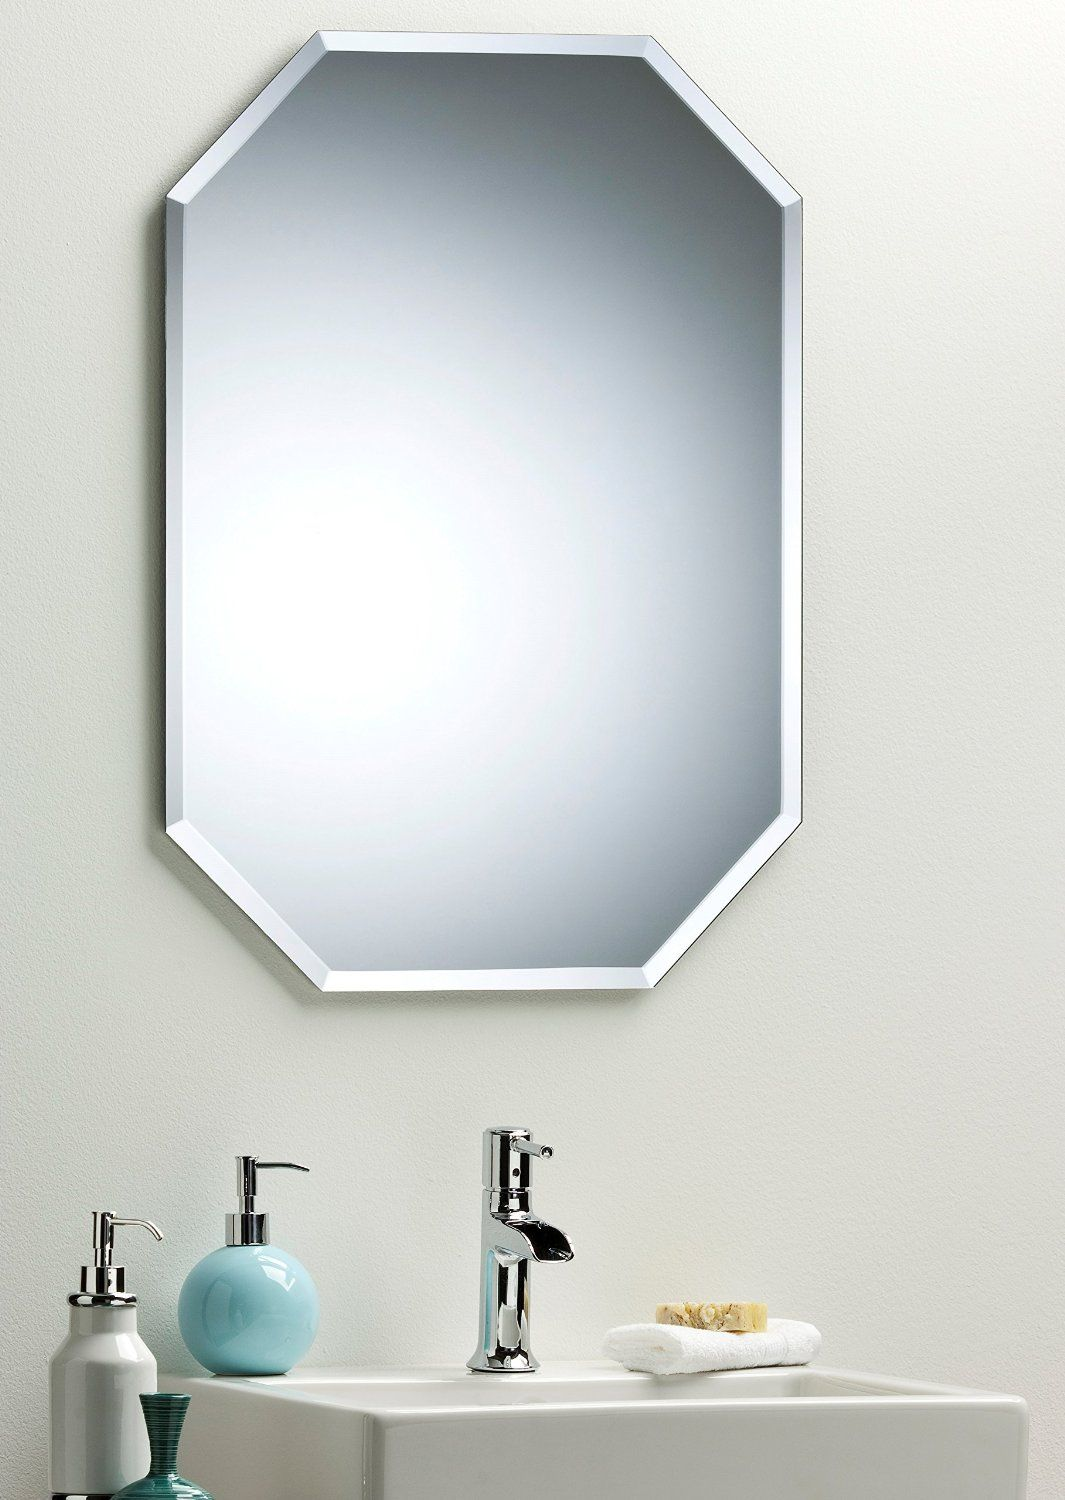 Octagon Bathroom Mirror - Bathroom Design Ideas